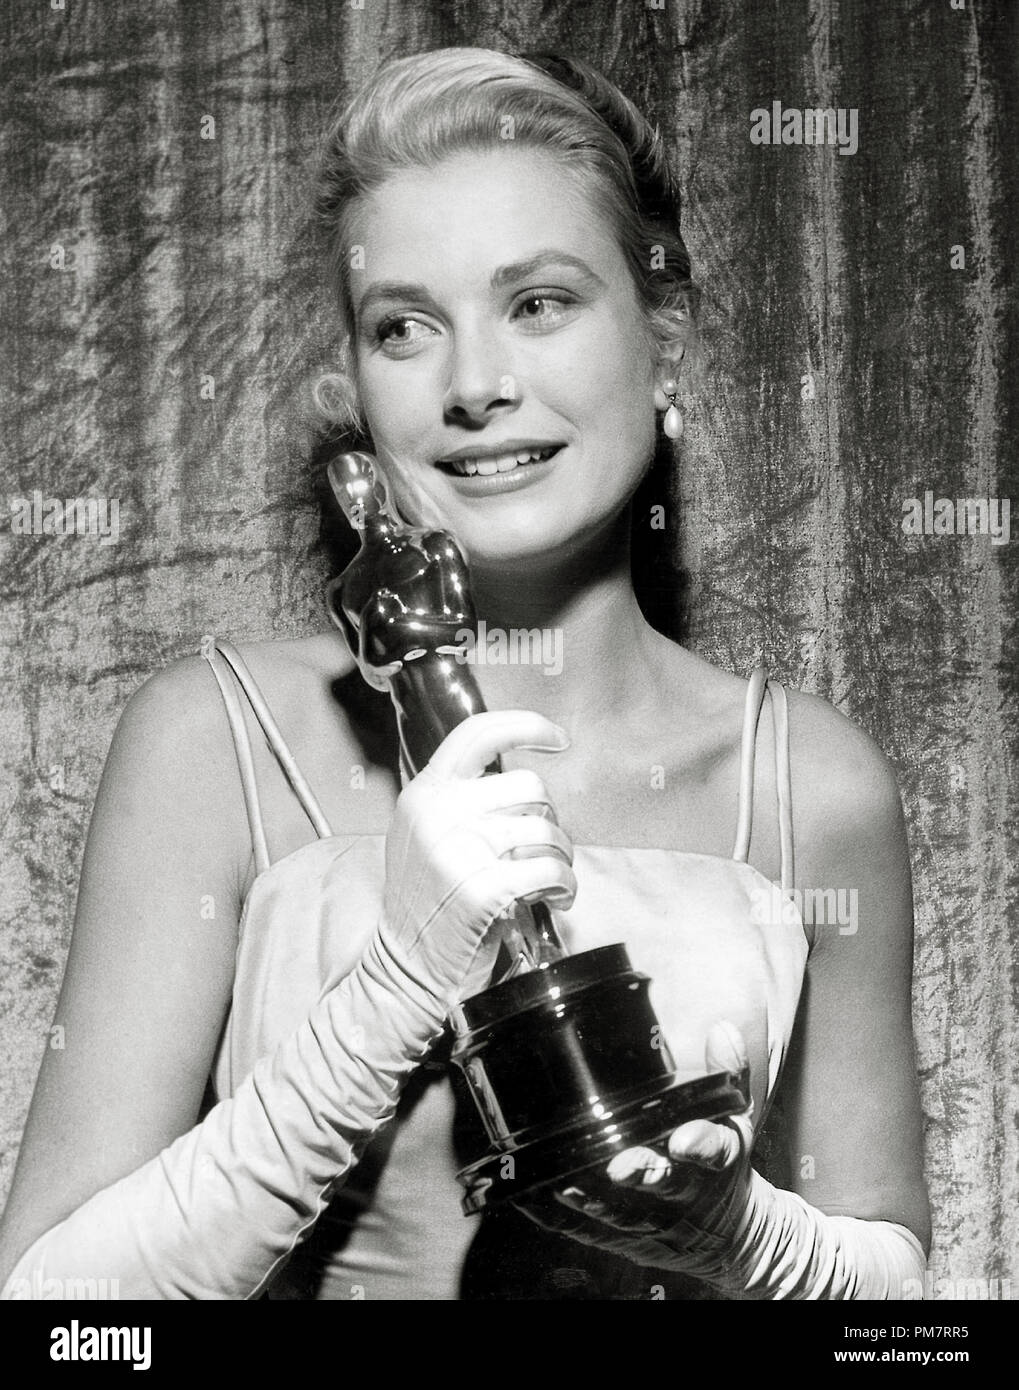 Grace Kelly holds her 'Best Actress' Oscar for her performance in 'The Country Girl' at The 27th Annual Academy Awards held at the RKO Pantages Theatre on March 30, 1955.  File Reference # 31386_439 - Stock Image